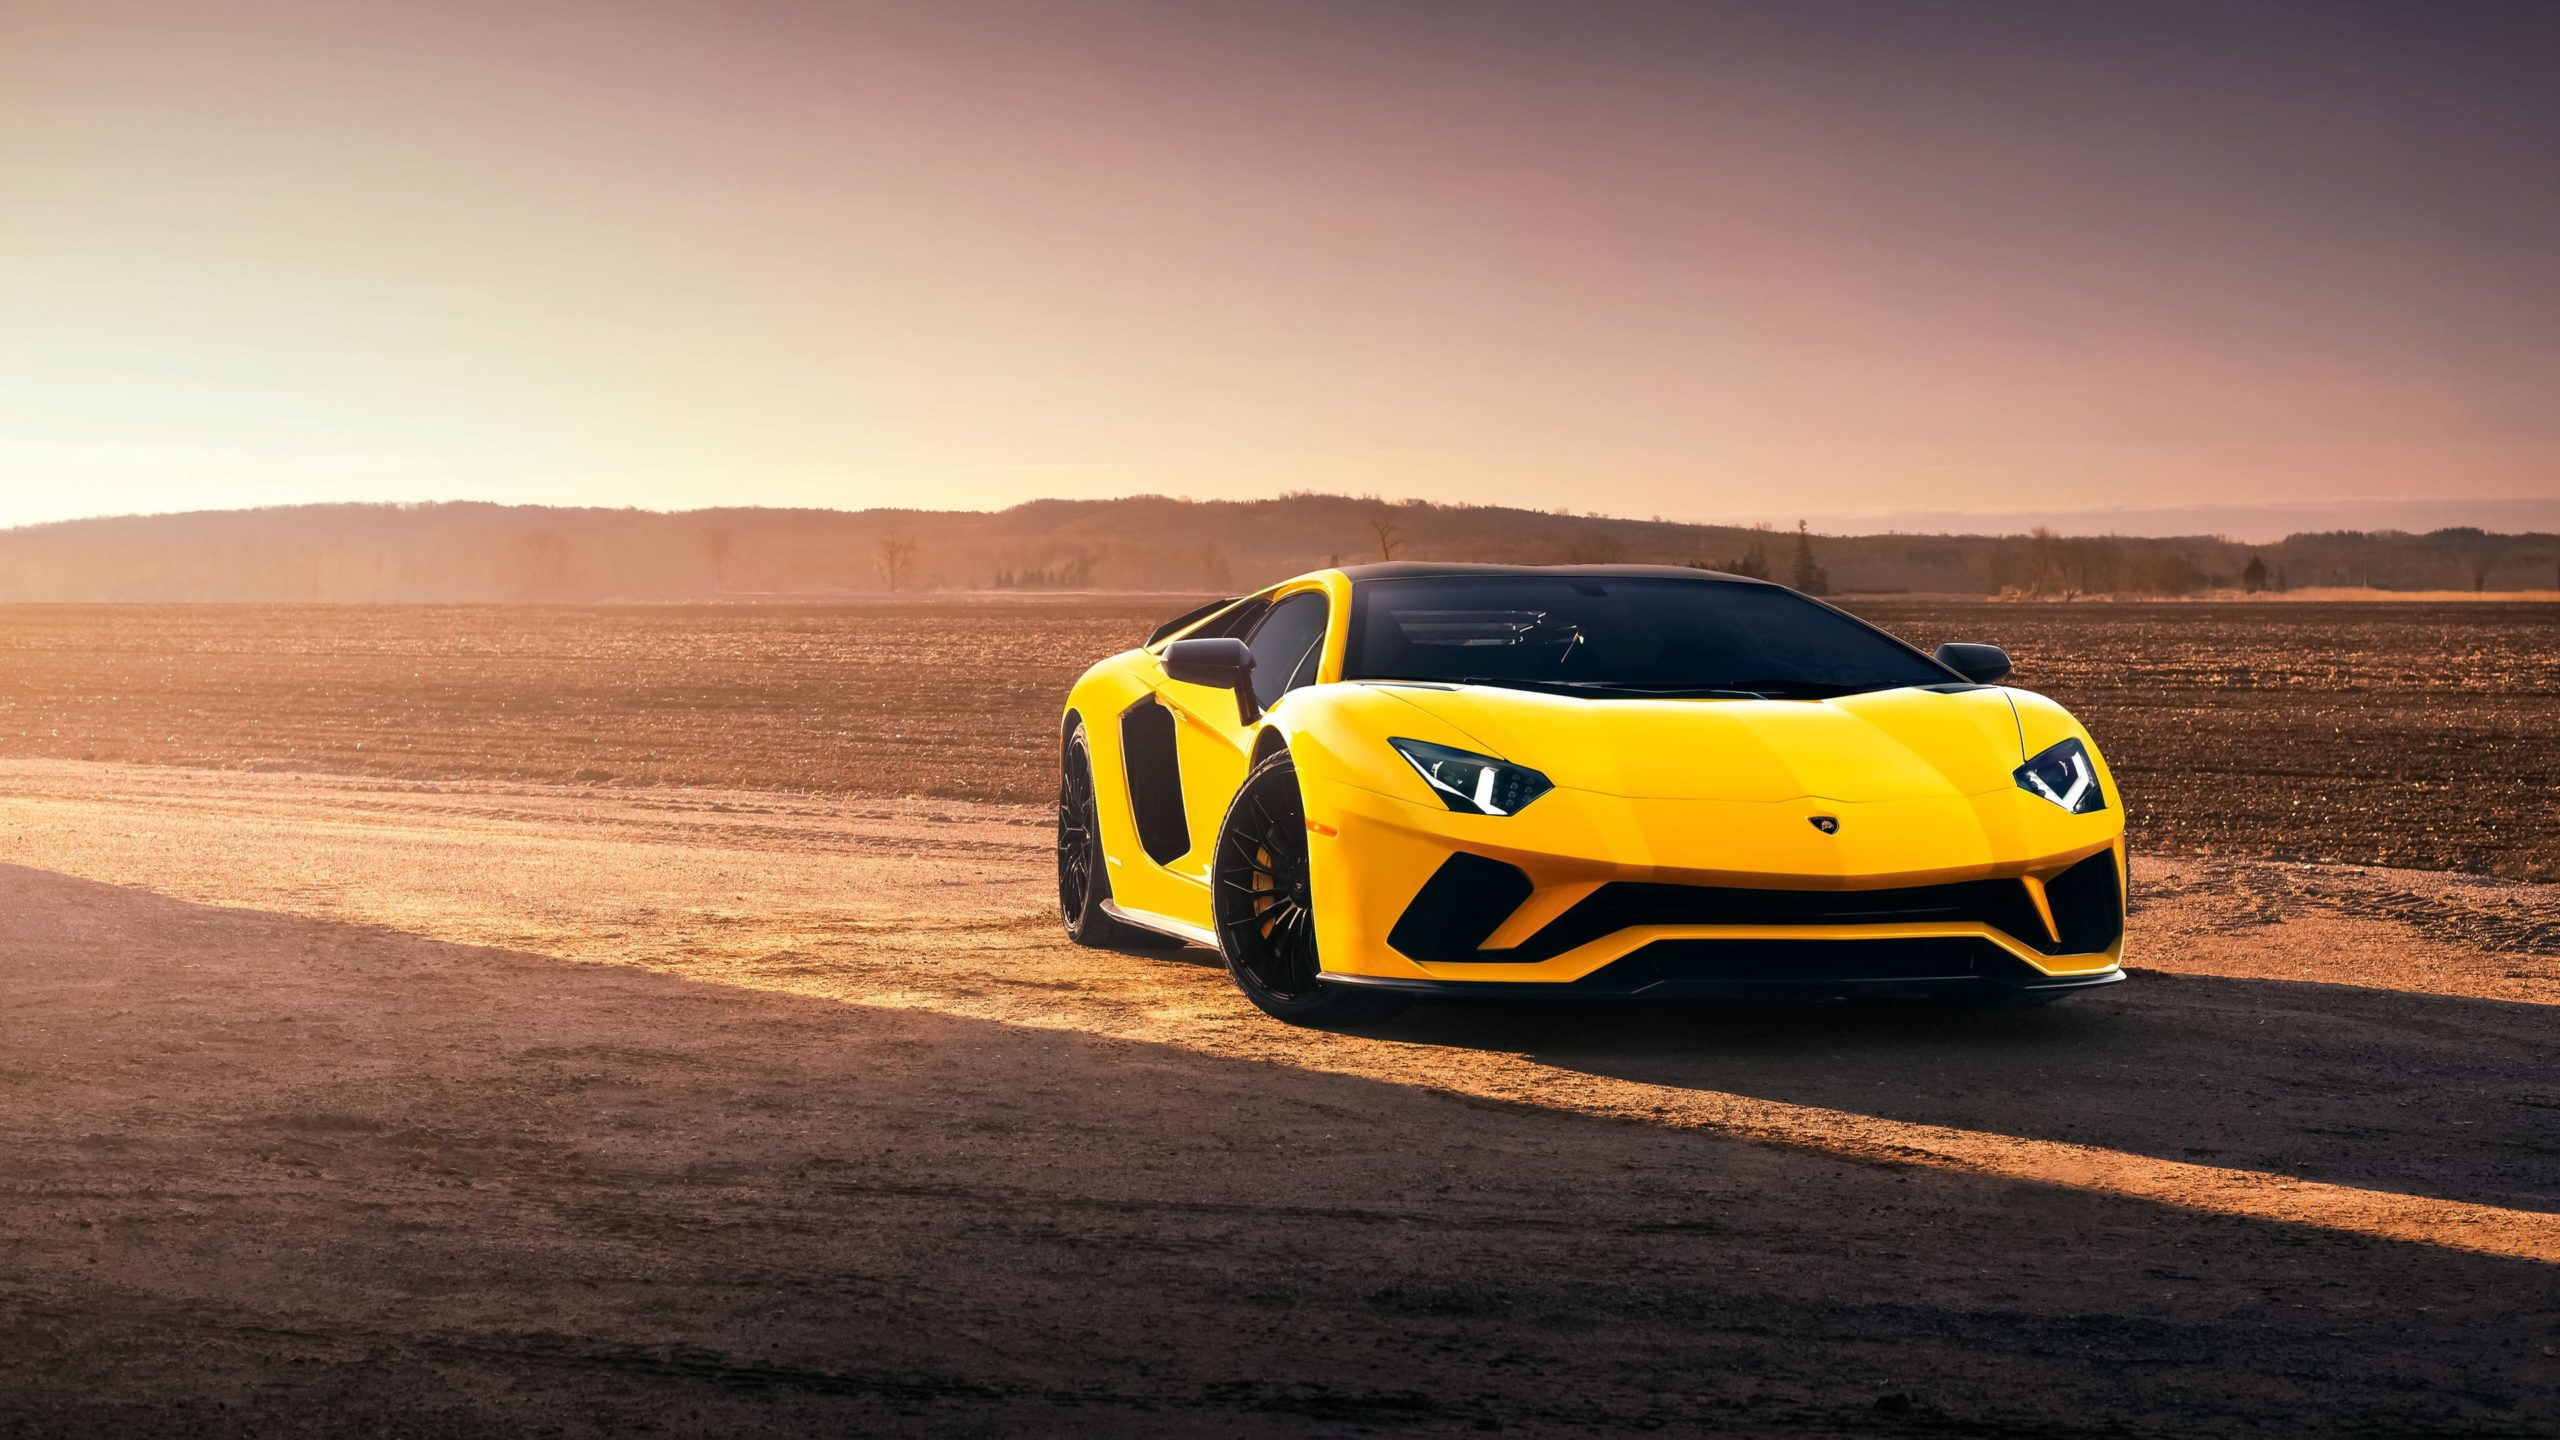 2019 Yellow Series Lamborghini Aventador Background